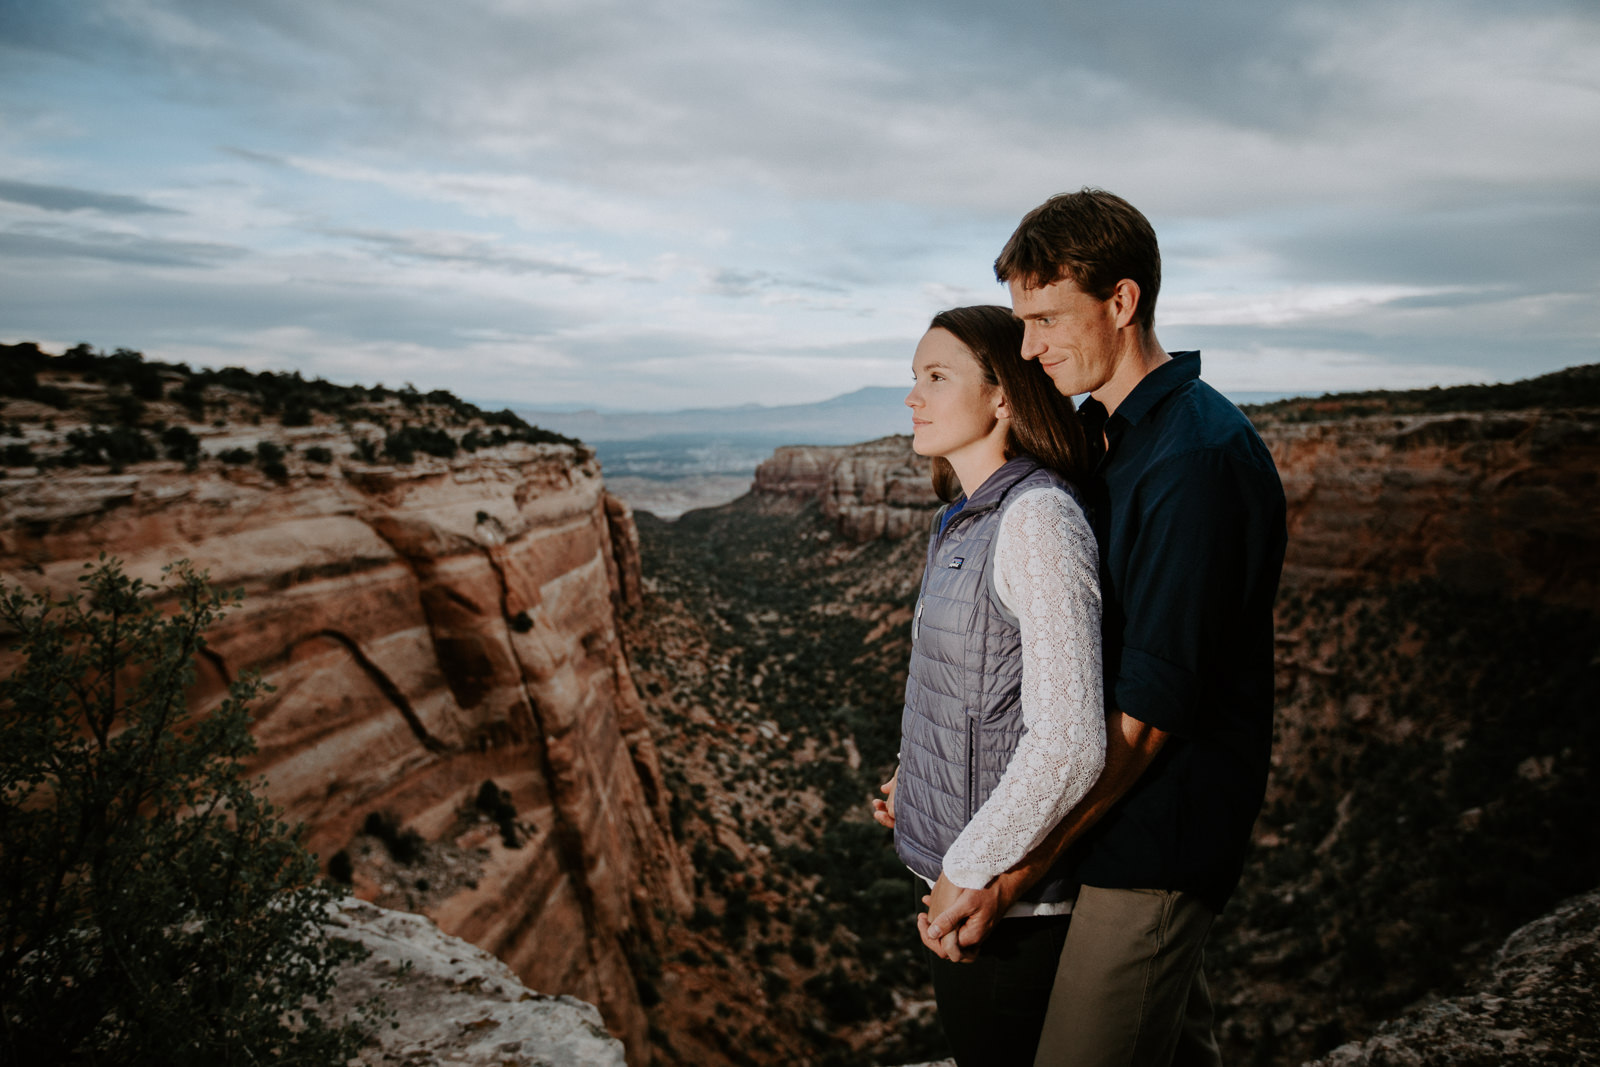 Candid moment of man holding his girlfriend from behind with cliffs desert canyon and town behind them